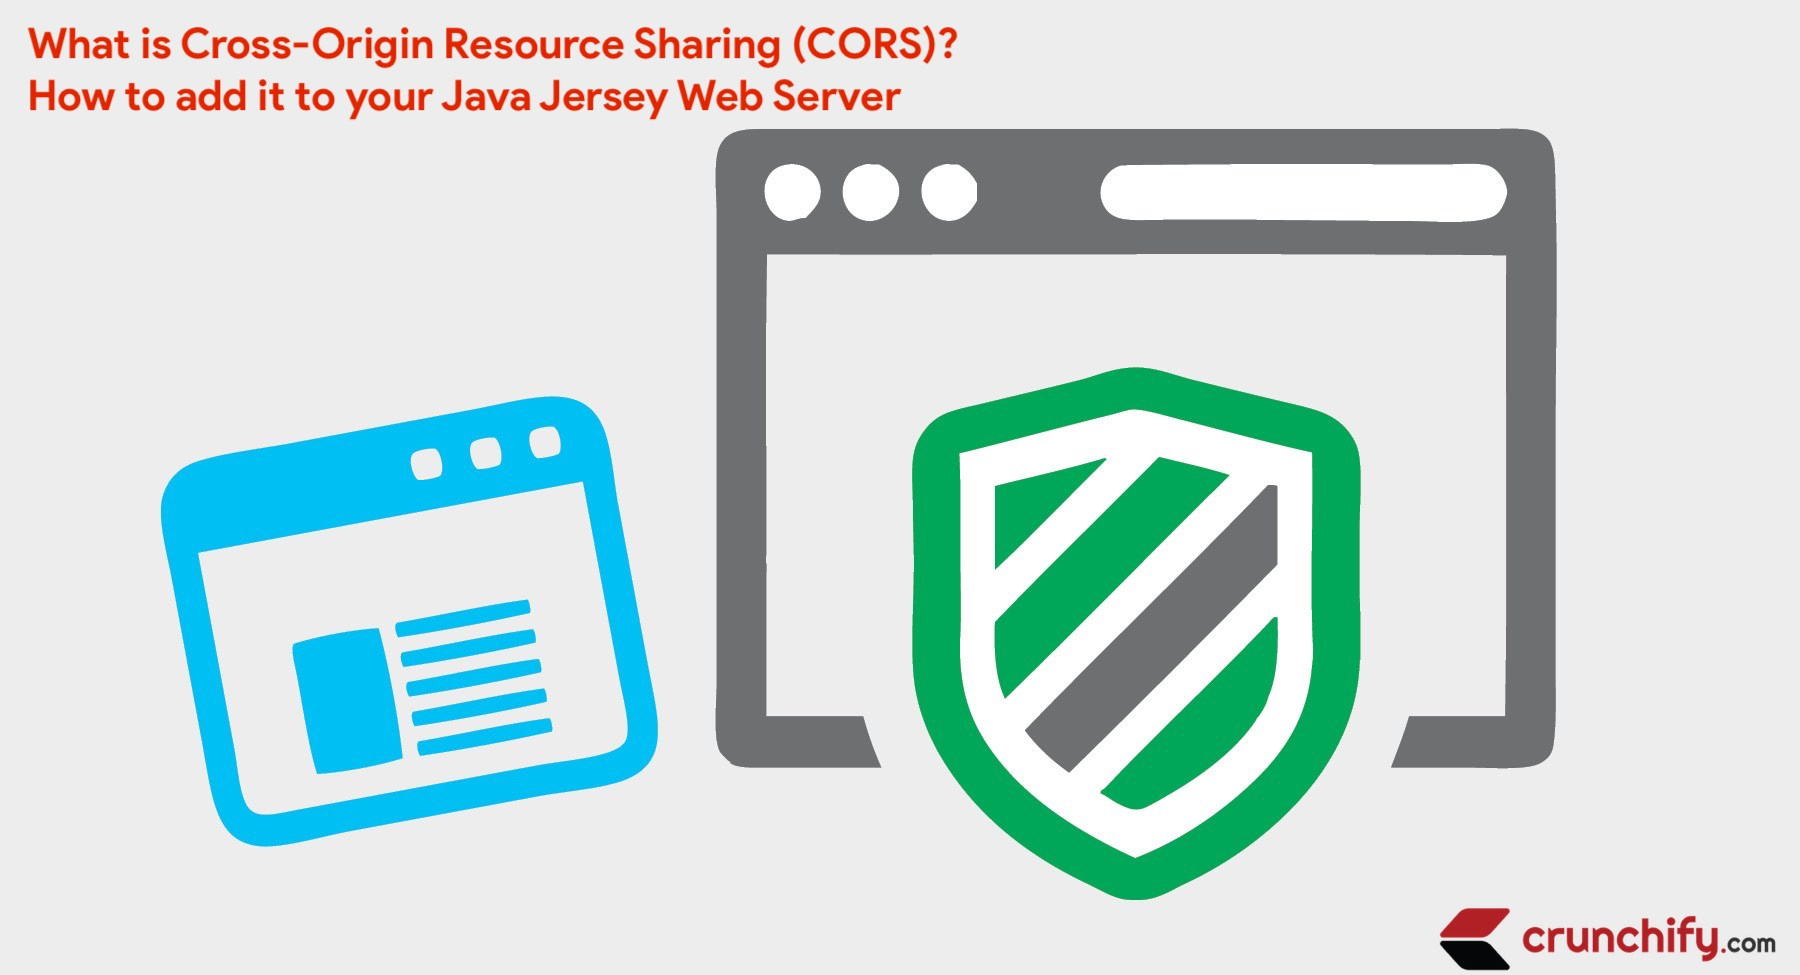 Cross-Origin Resource Sharing (CORS) Tutorial by Crunchify